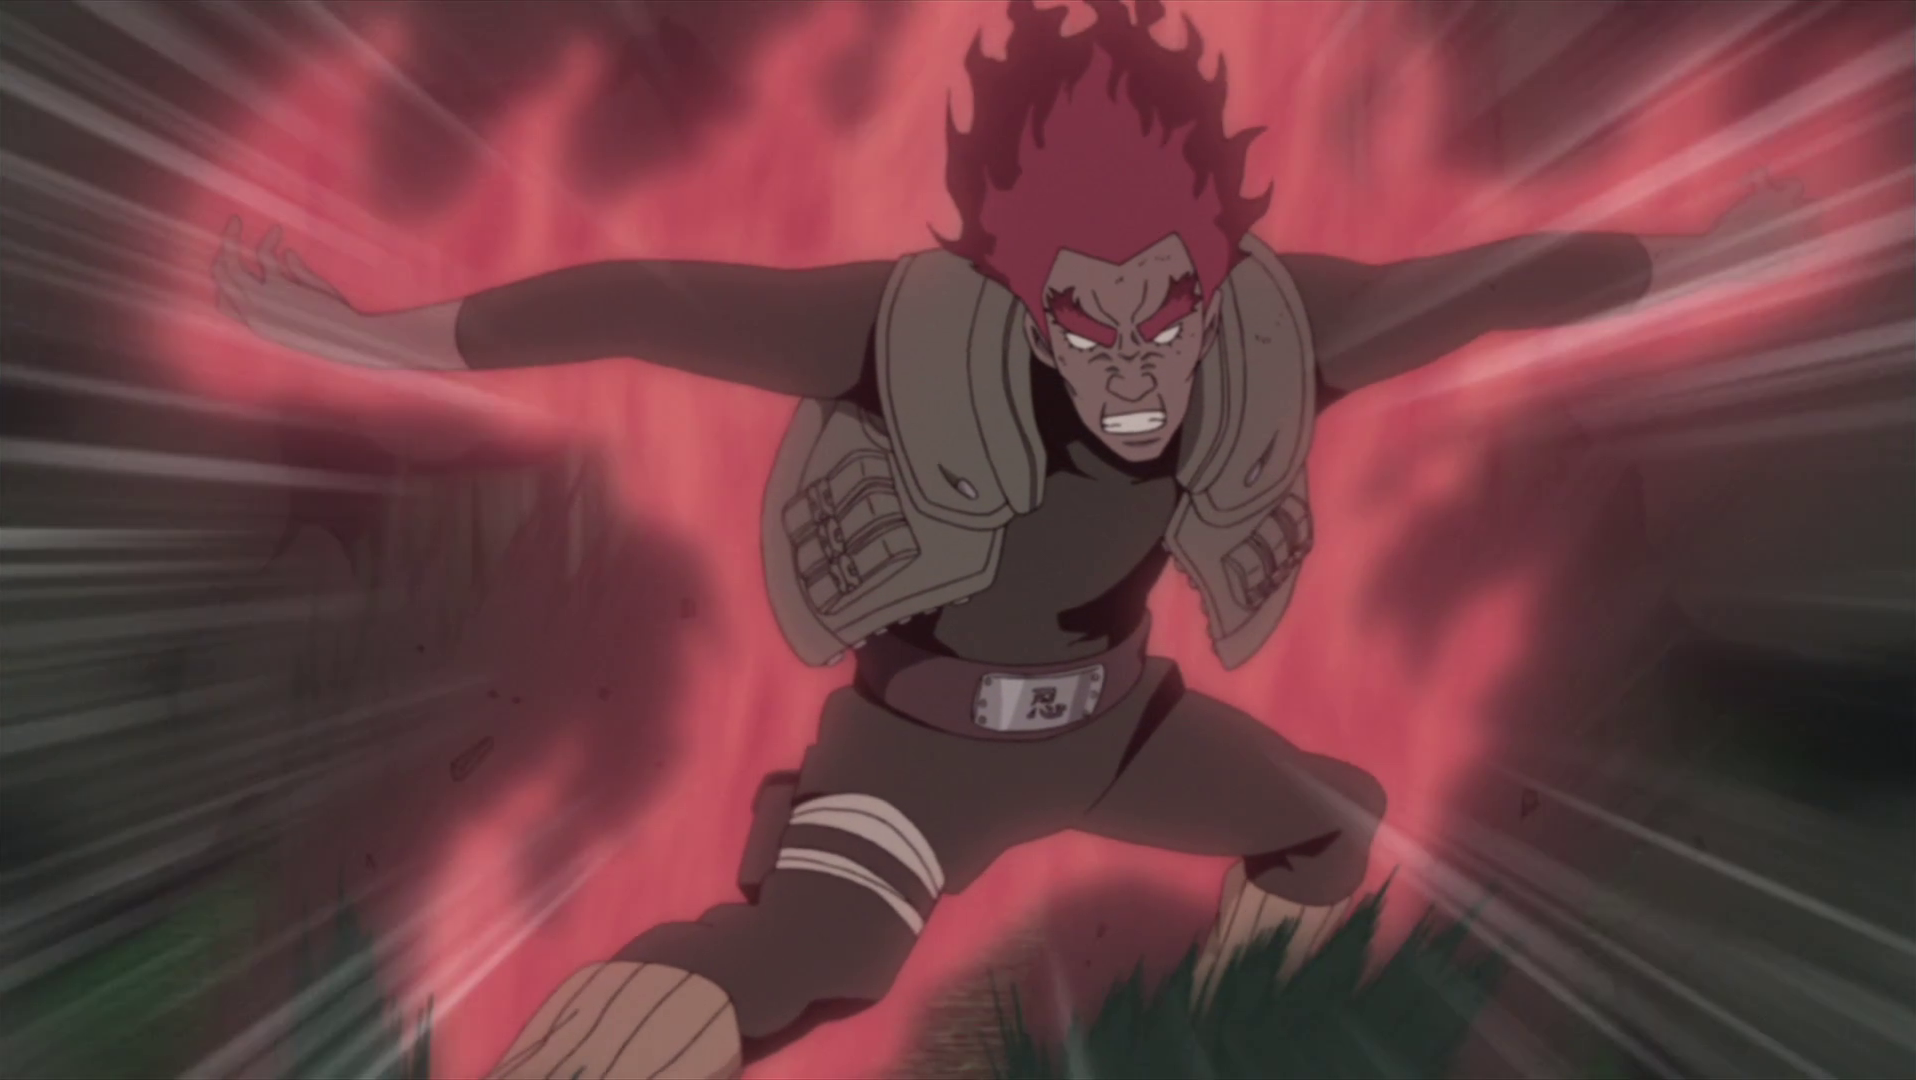 Eight gates released formation narutopedia fandom powered by wikia